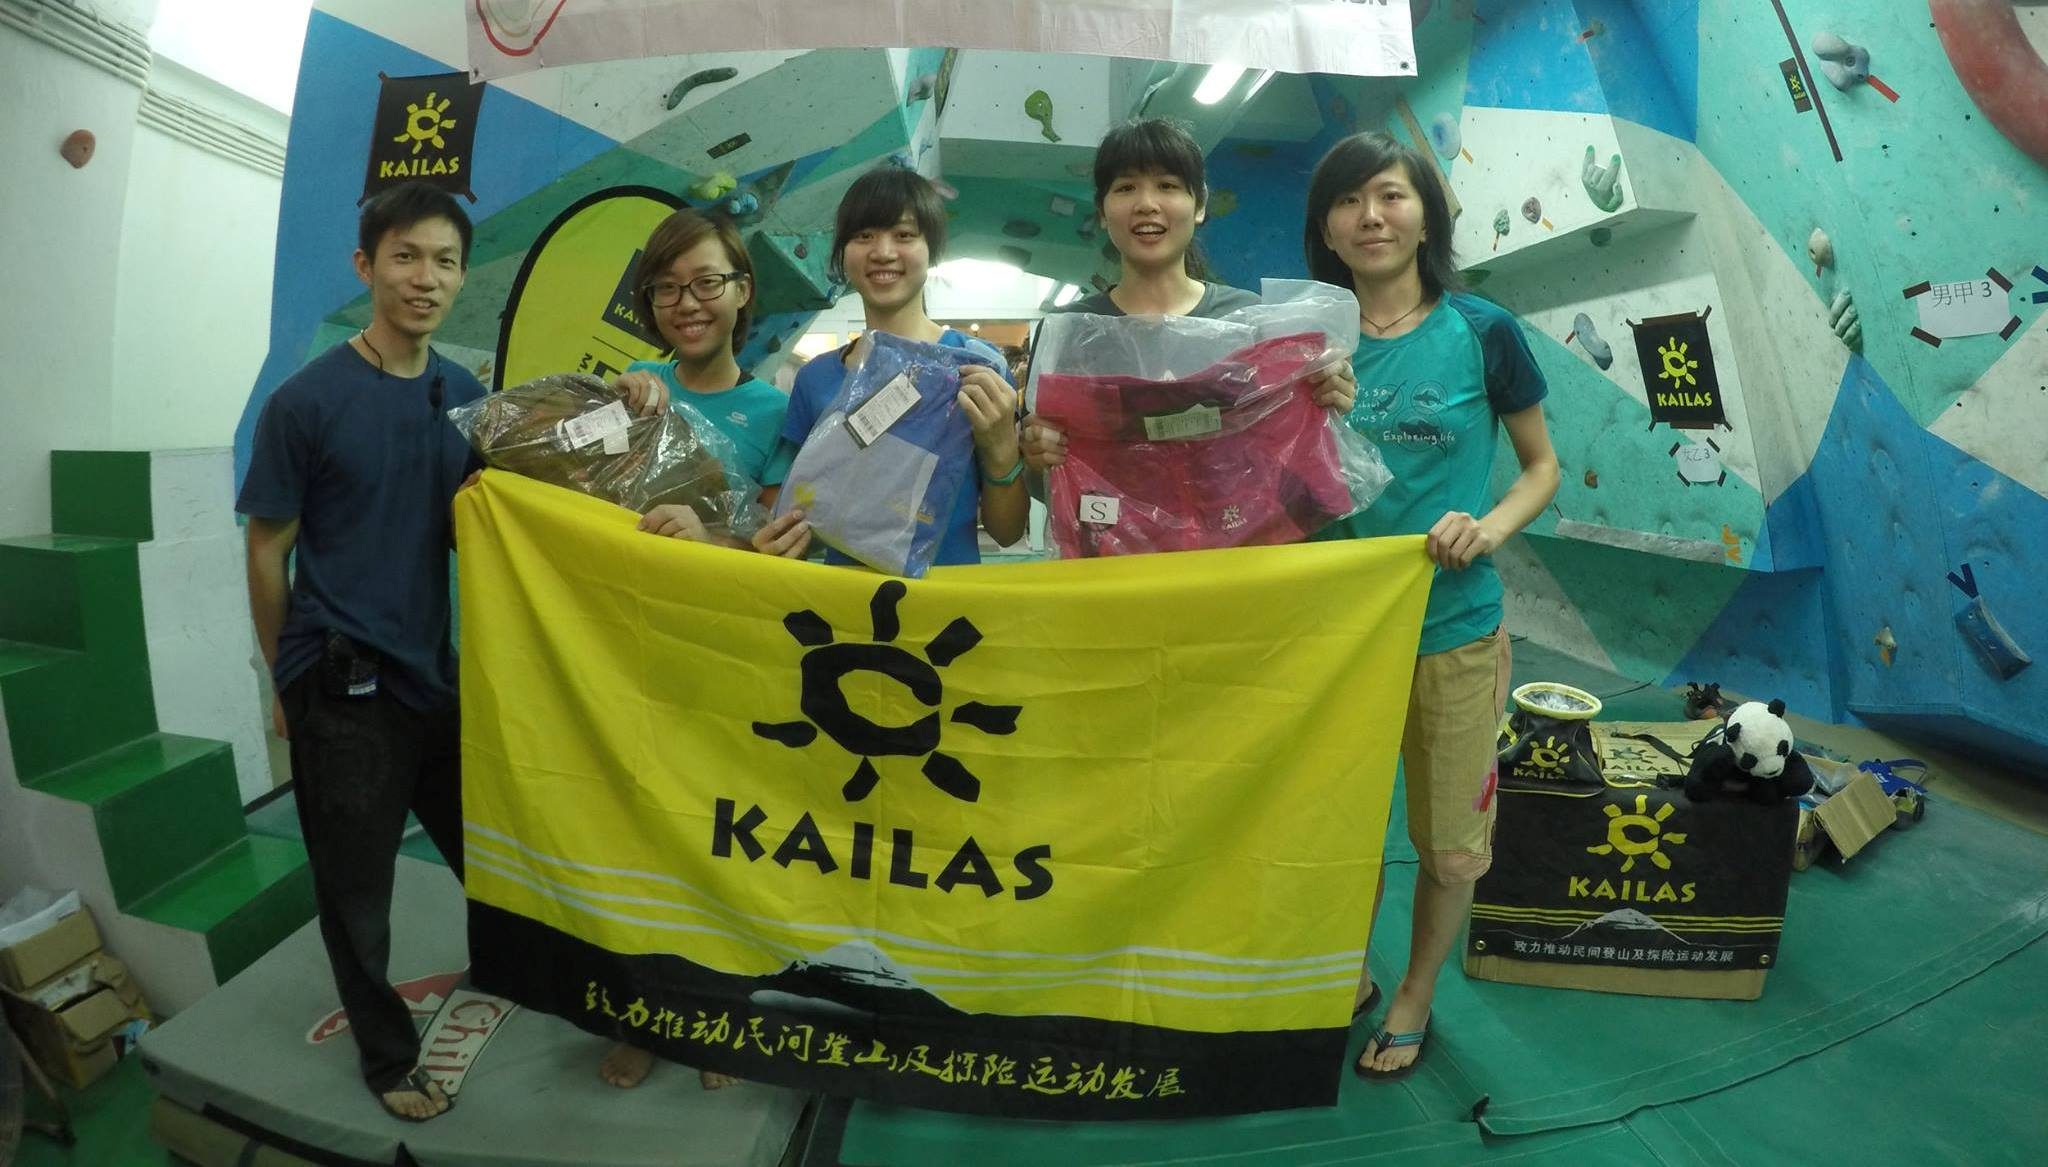 UM Rock Climbing Team's captain Sou Pak Chi (2nd from right) wins a championship